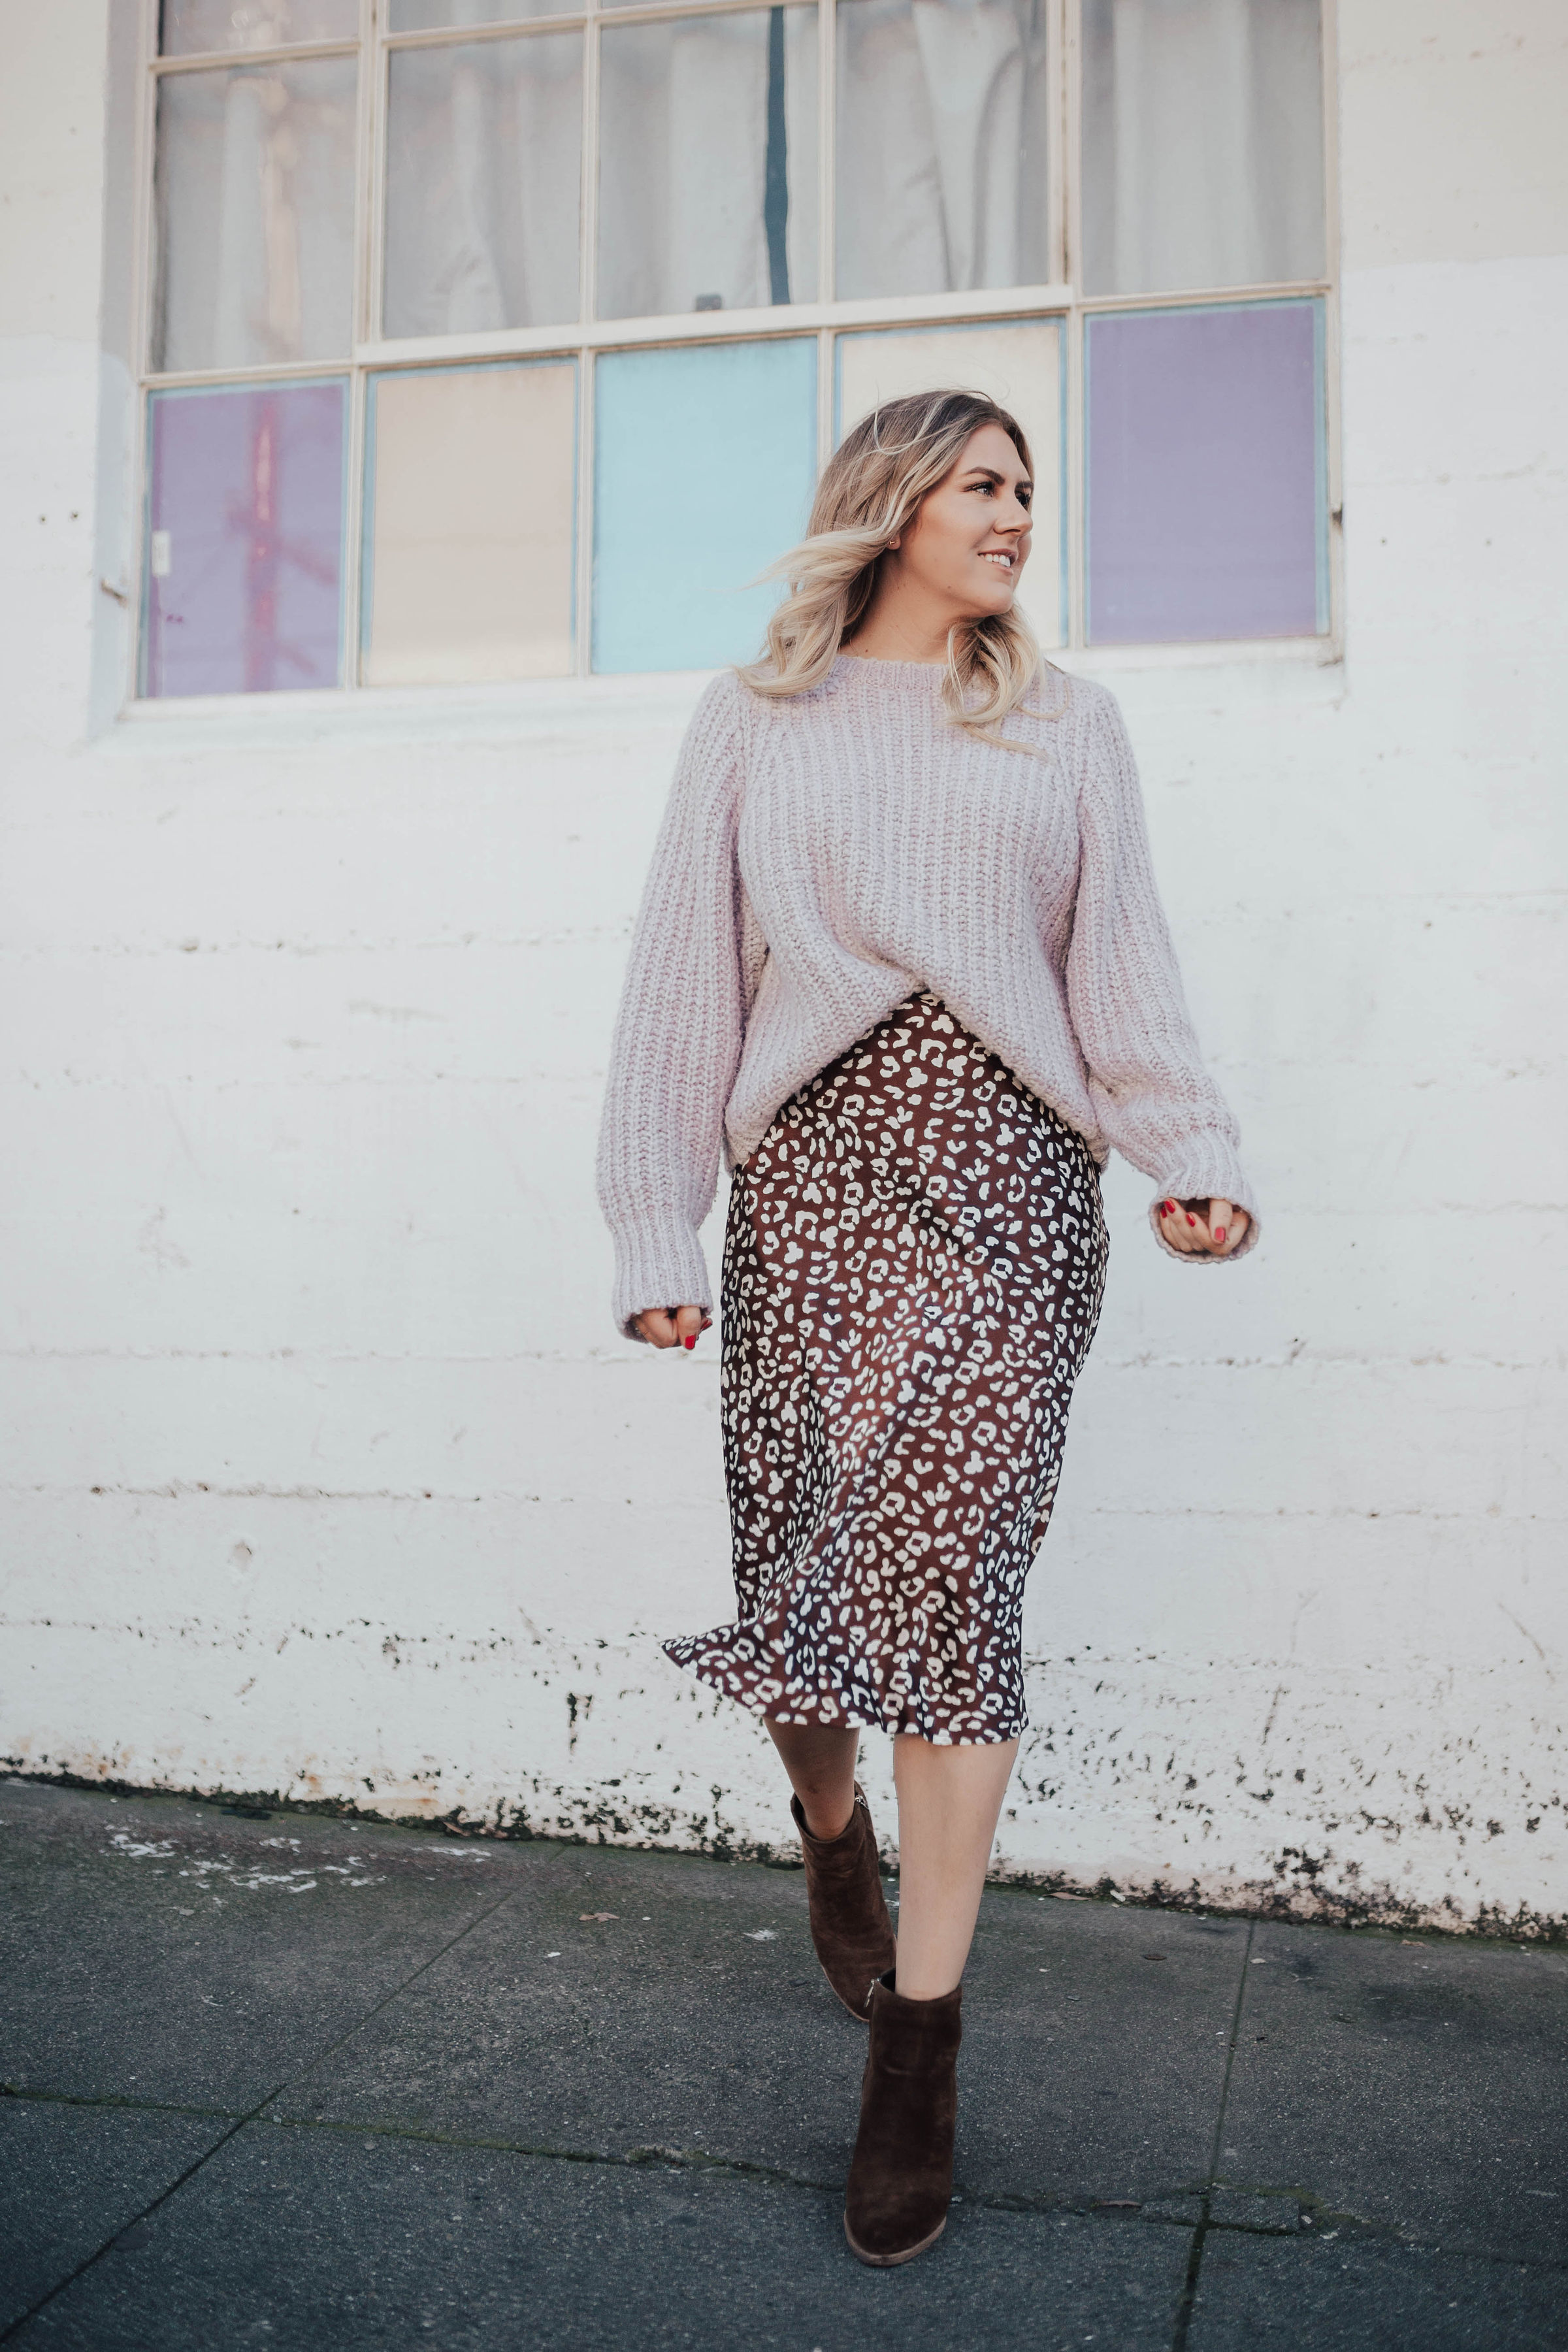 via Thea- Valentine's Day: Leopard Skirt, Purple Sweater, Brown Suede boots